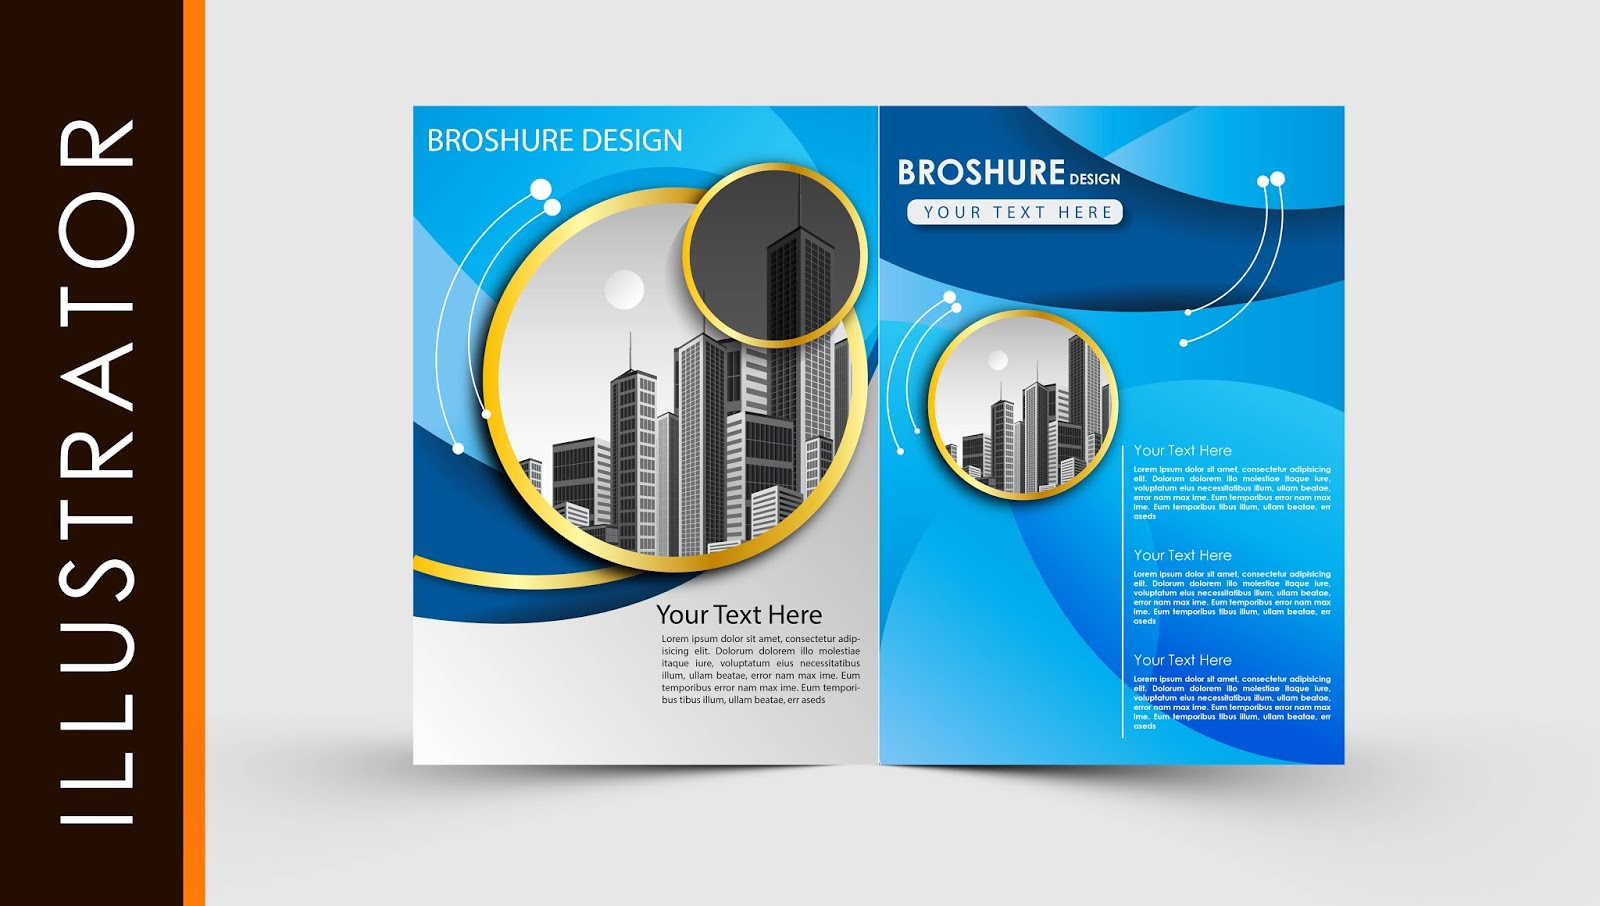 brochure template illustrator free download - free download adobe illustrator template brochure two fold